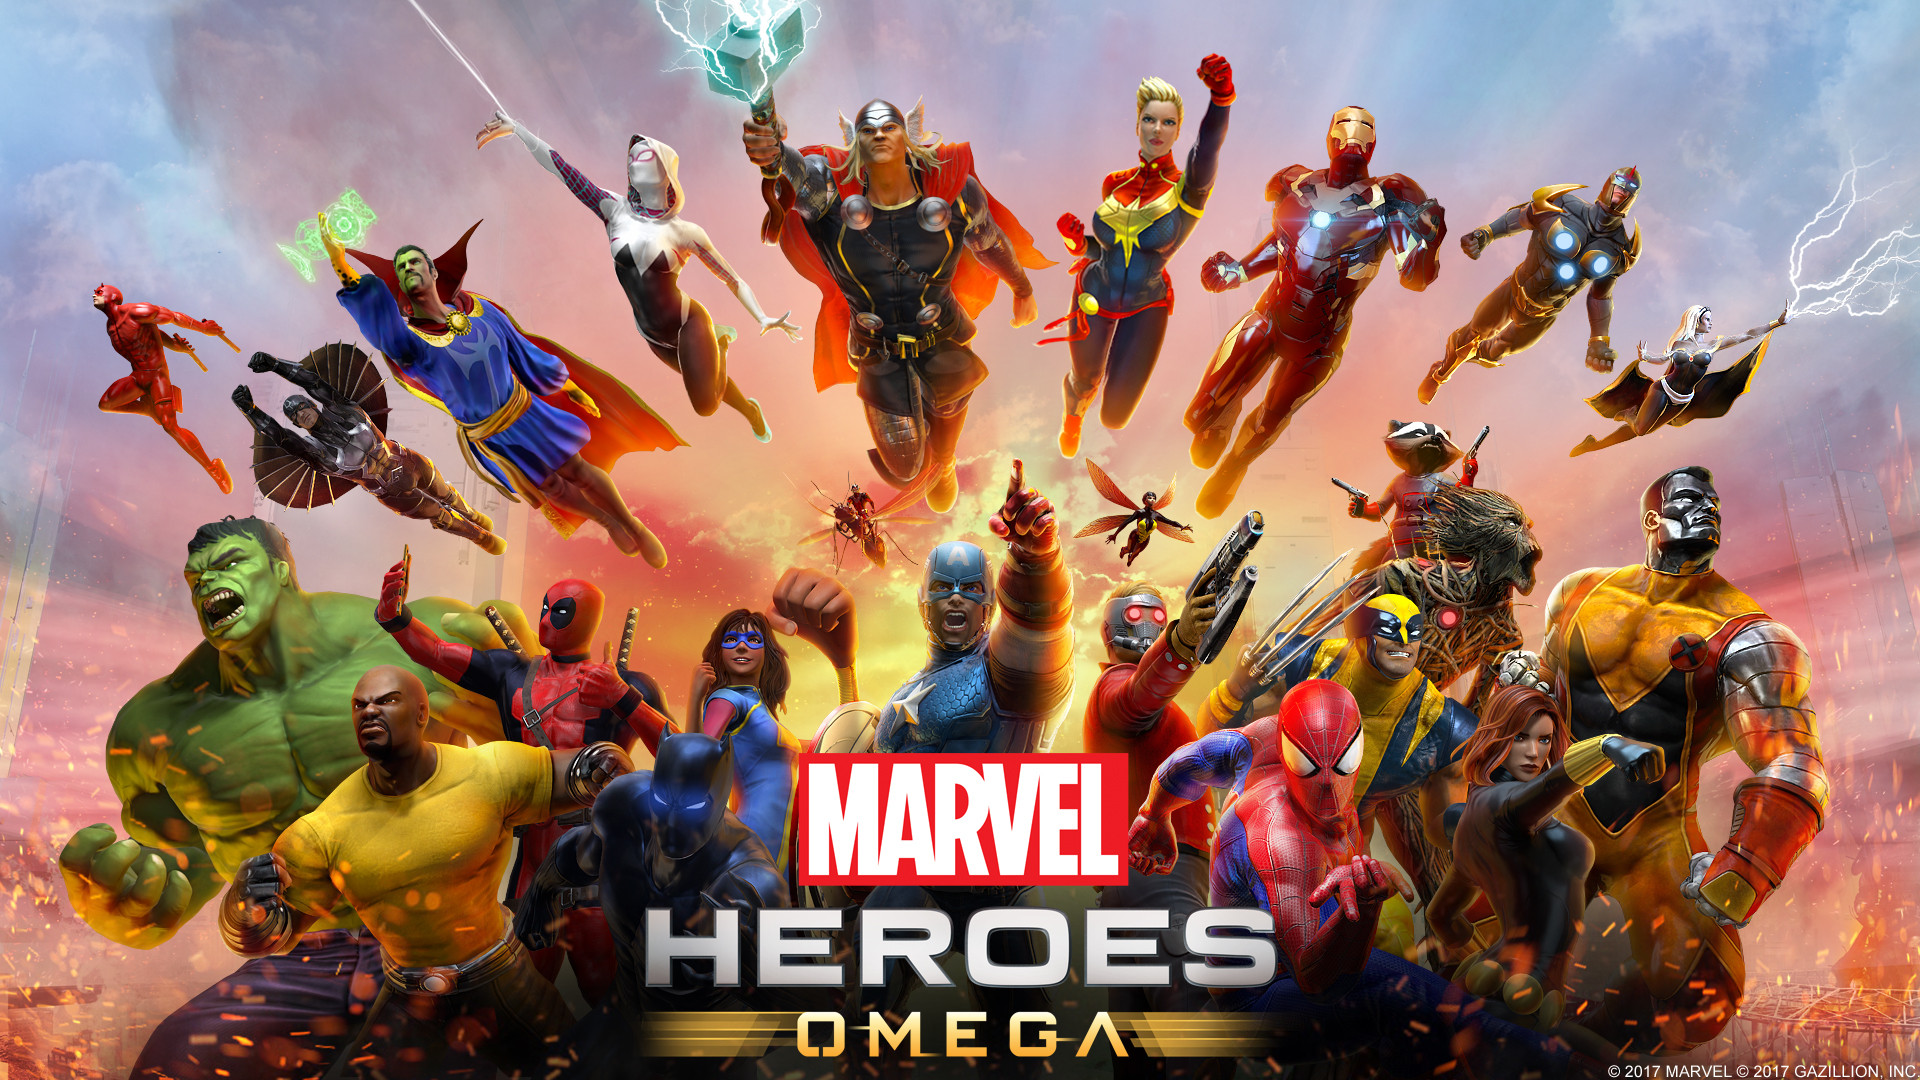 Photo of Marvel Heroes is Closing Down, Disney and Gazillion Have Ended Their Relationship